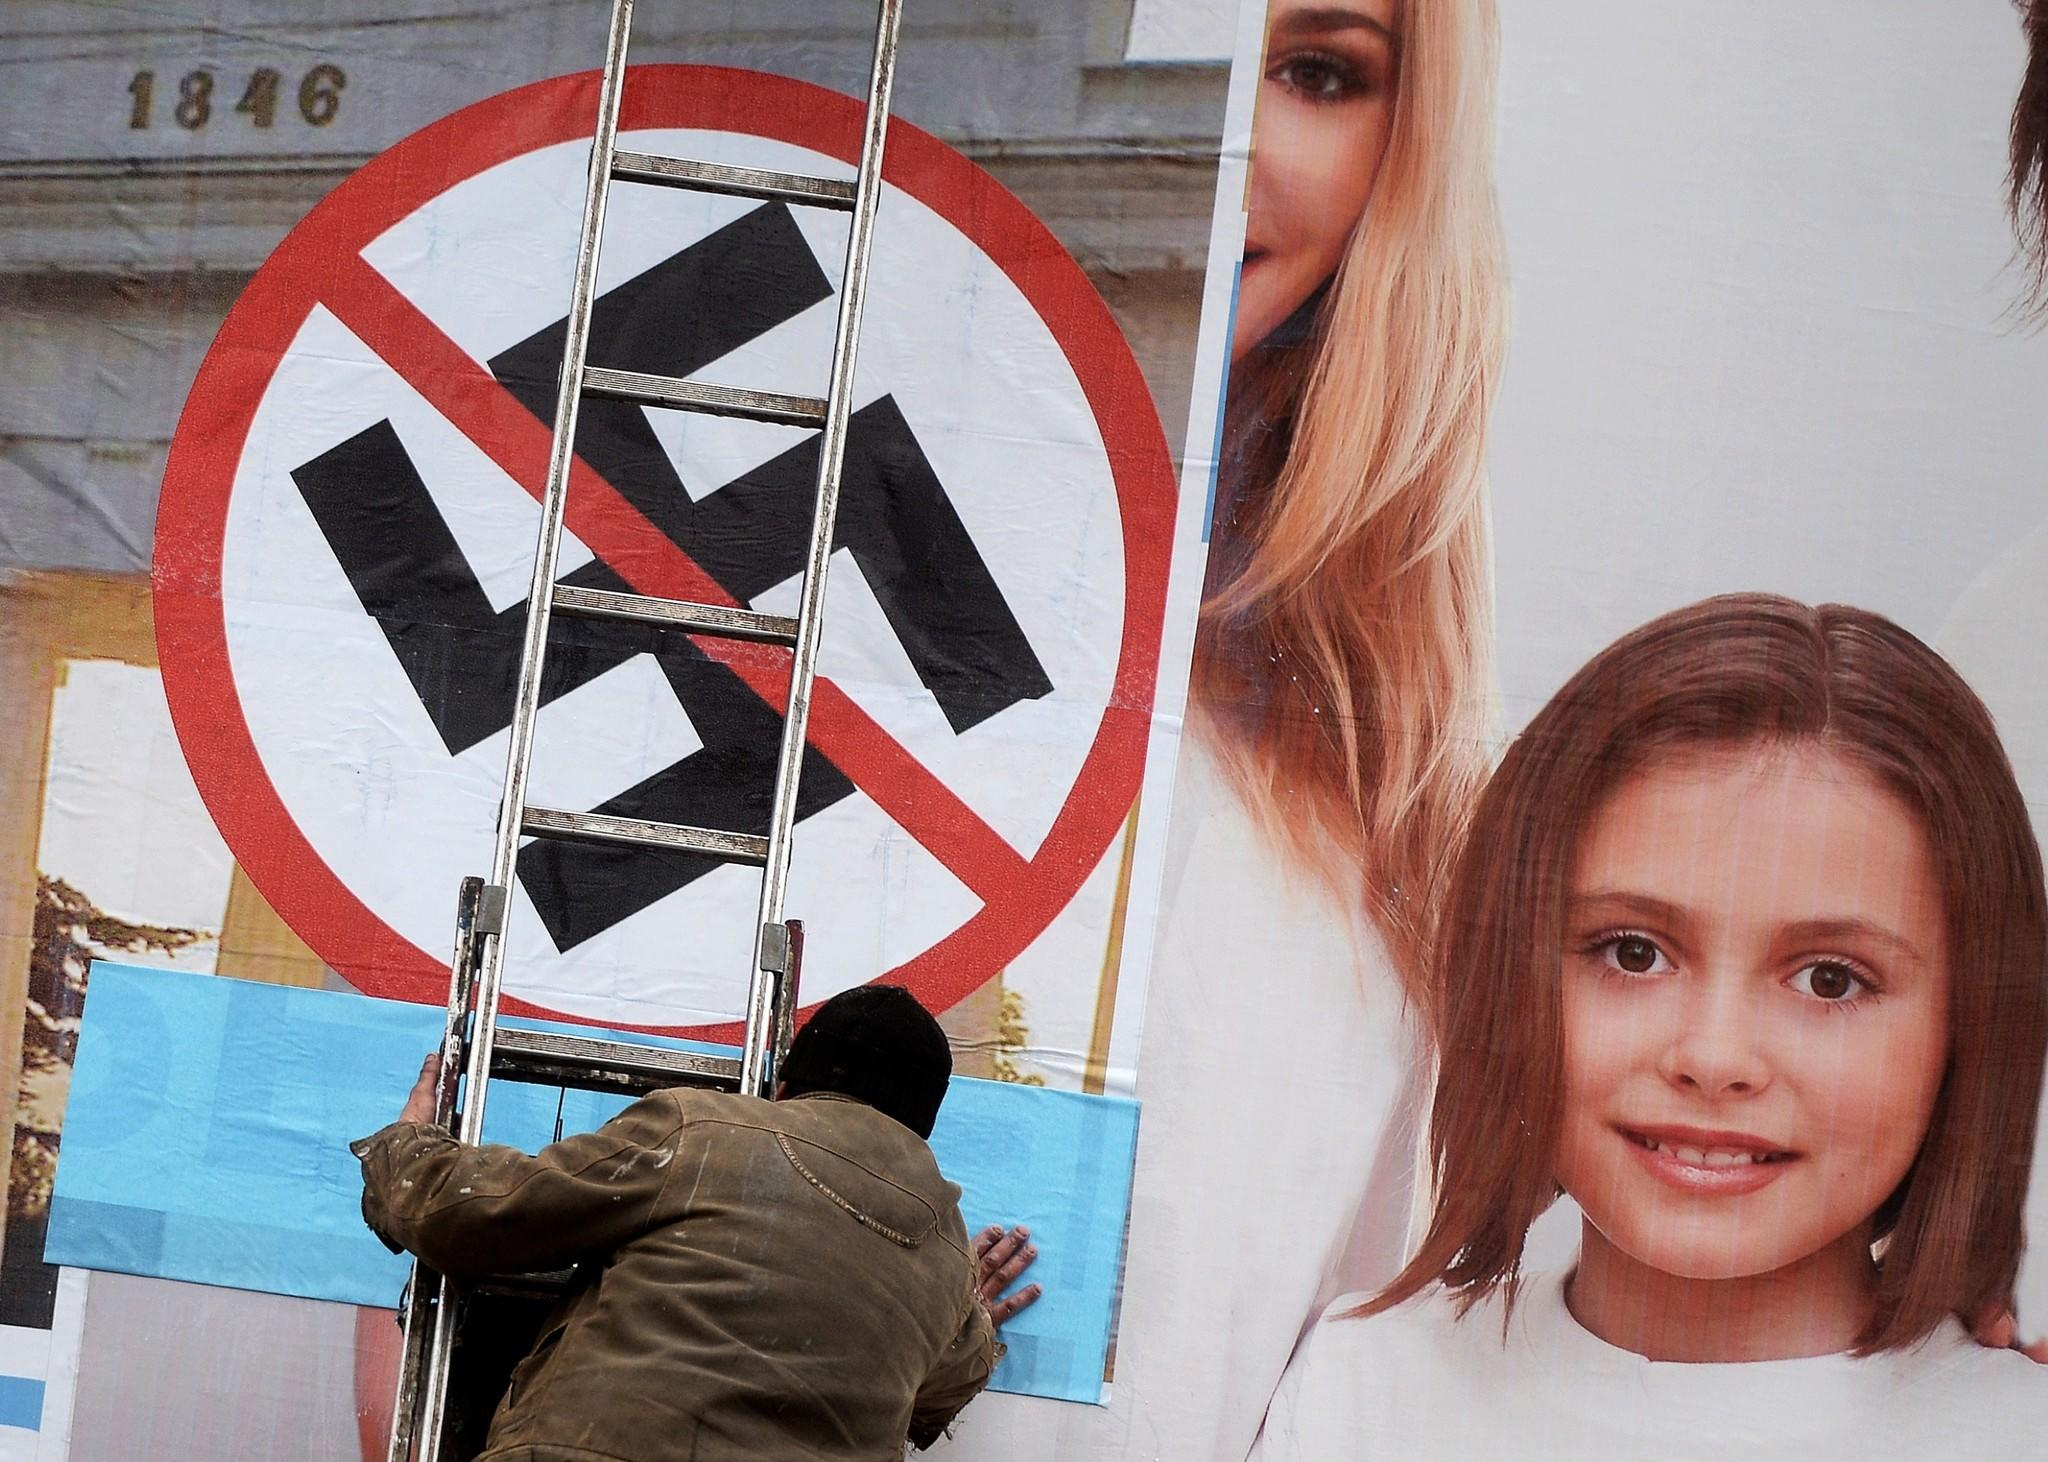 Right-wing extremists in Ukraine sport a symbol similar to the Nazi swastika shown above in Sevastopol.